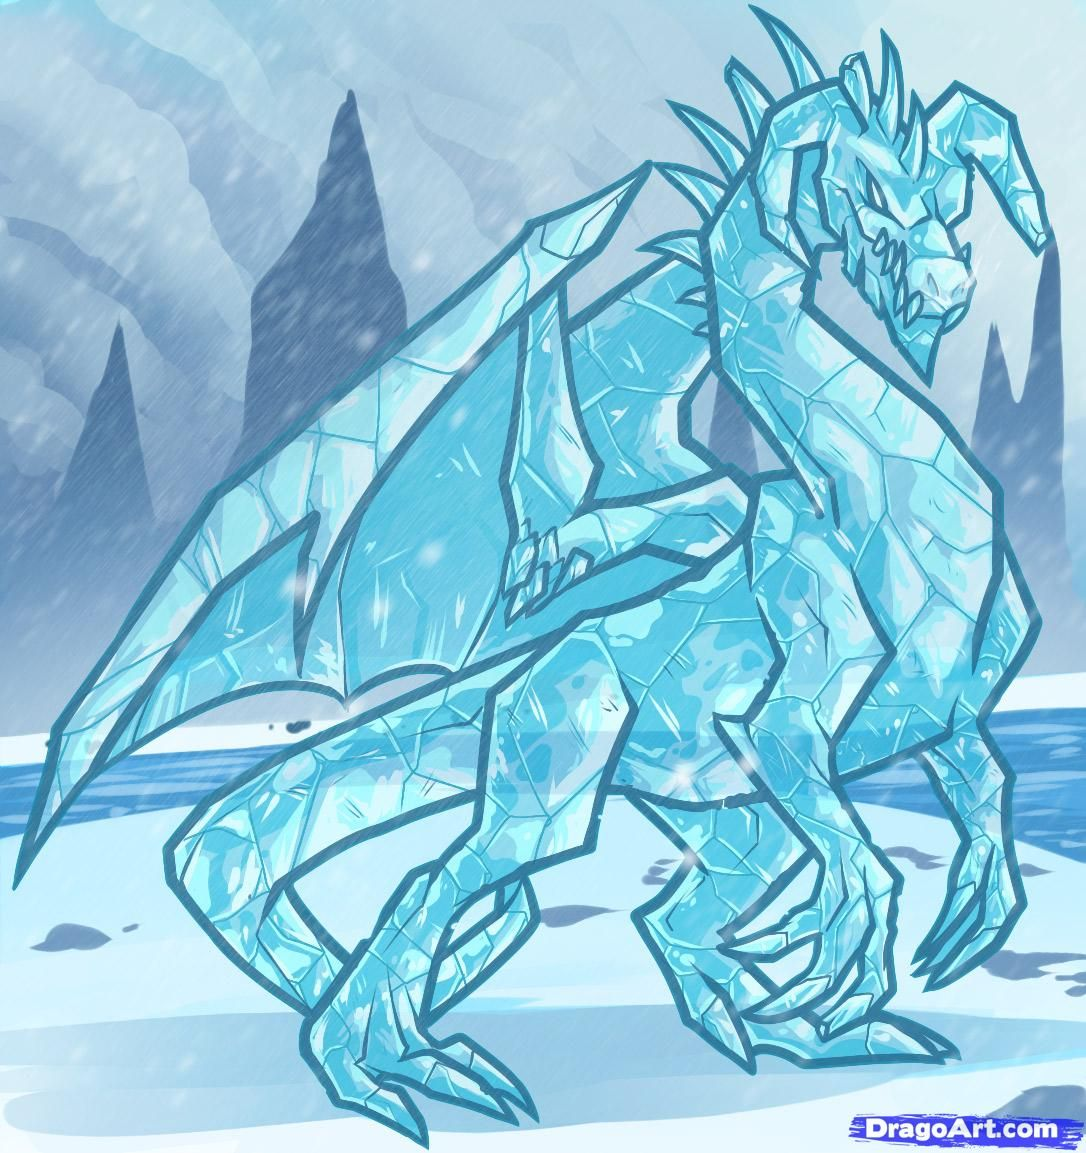 How To Draw An Ice Dragon, Ice Dragon, Step By Step, Dragons,